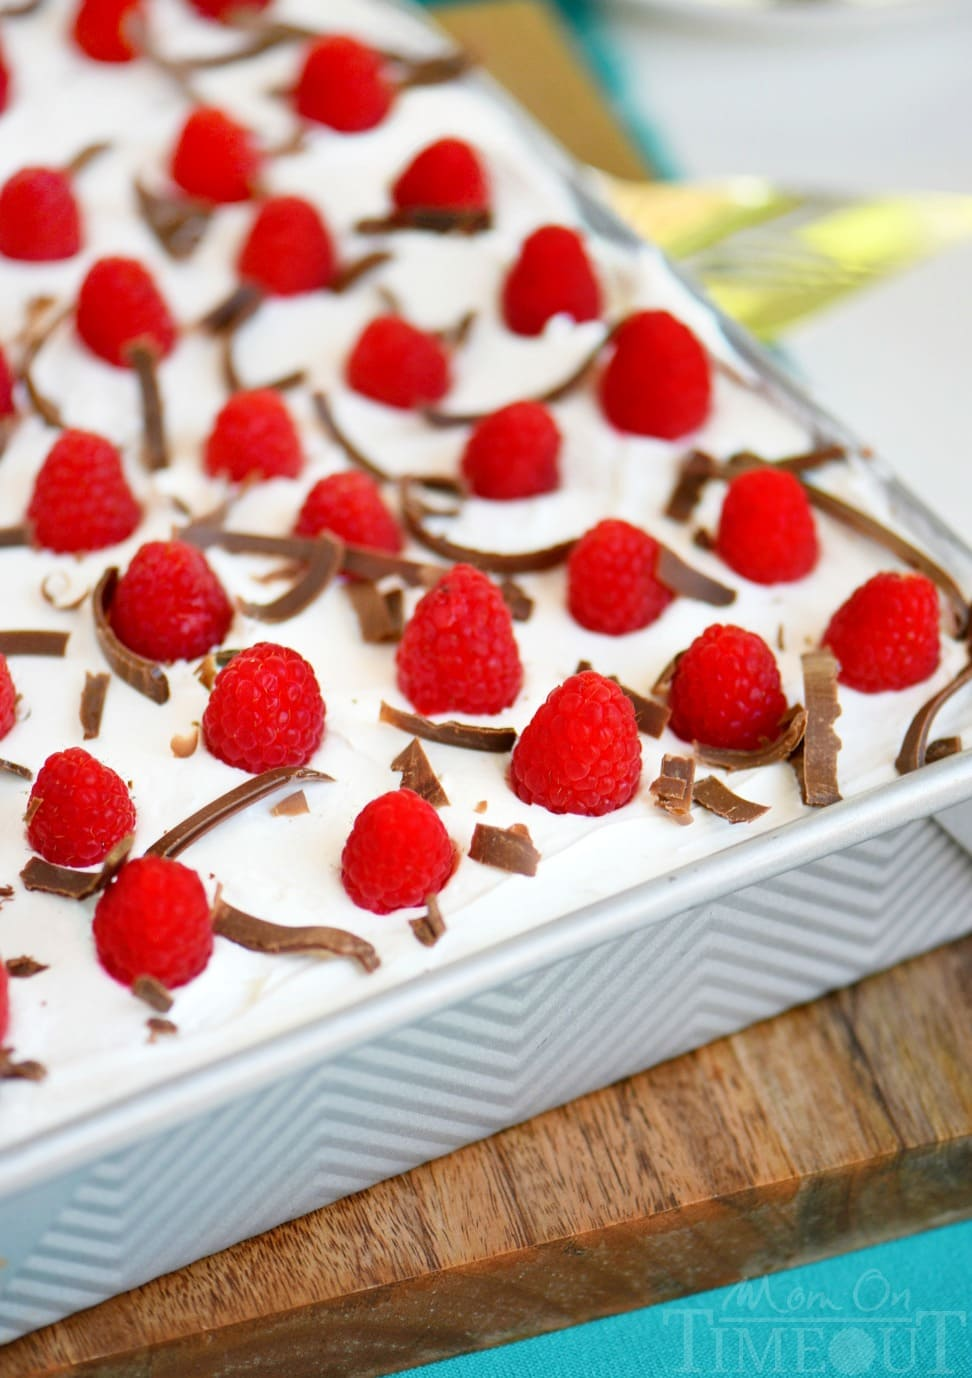 skinny-chocolate-raspberry-icebox-cake-whole